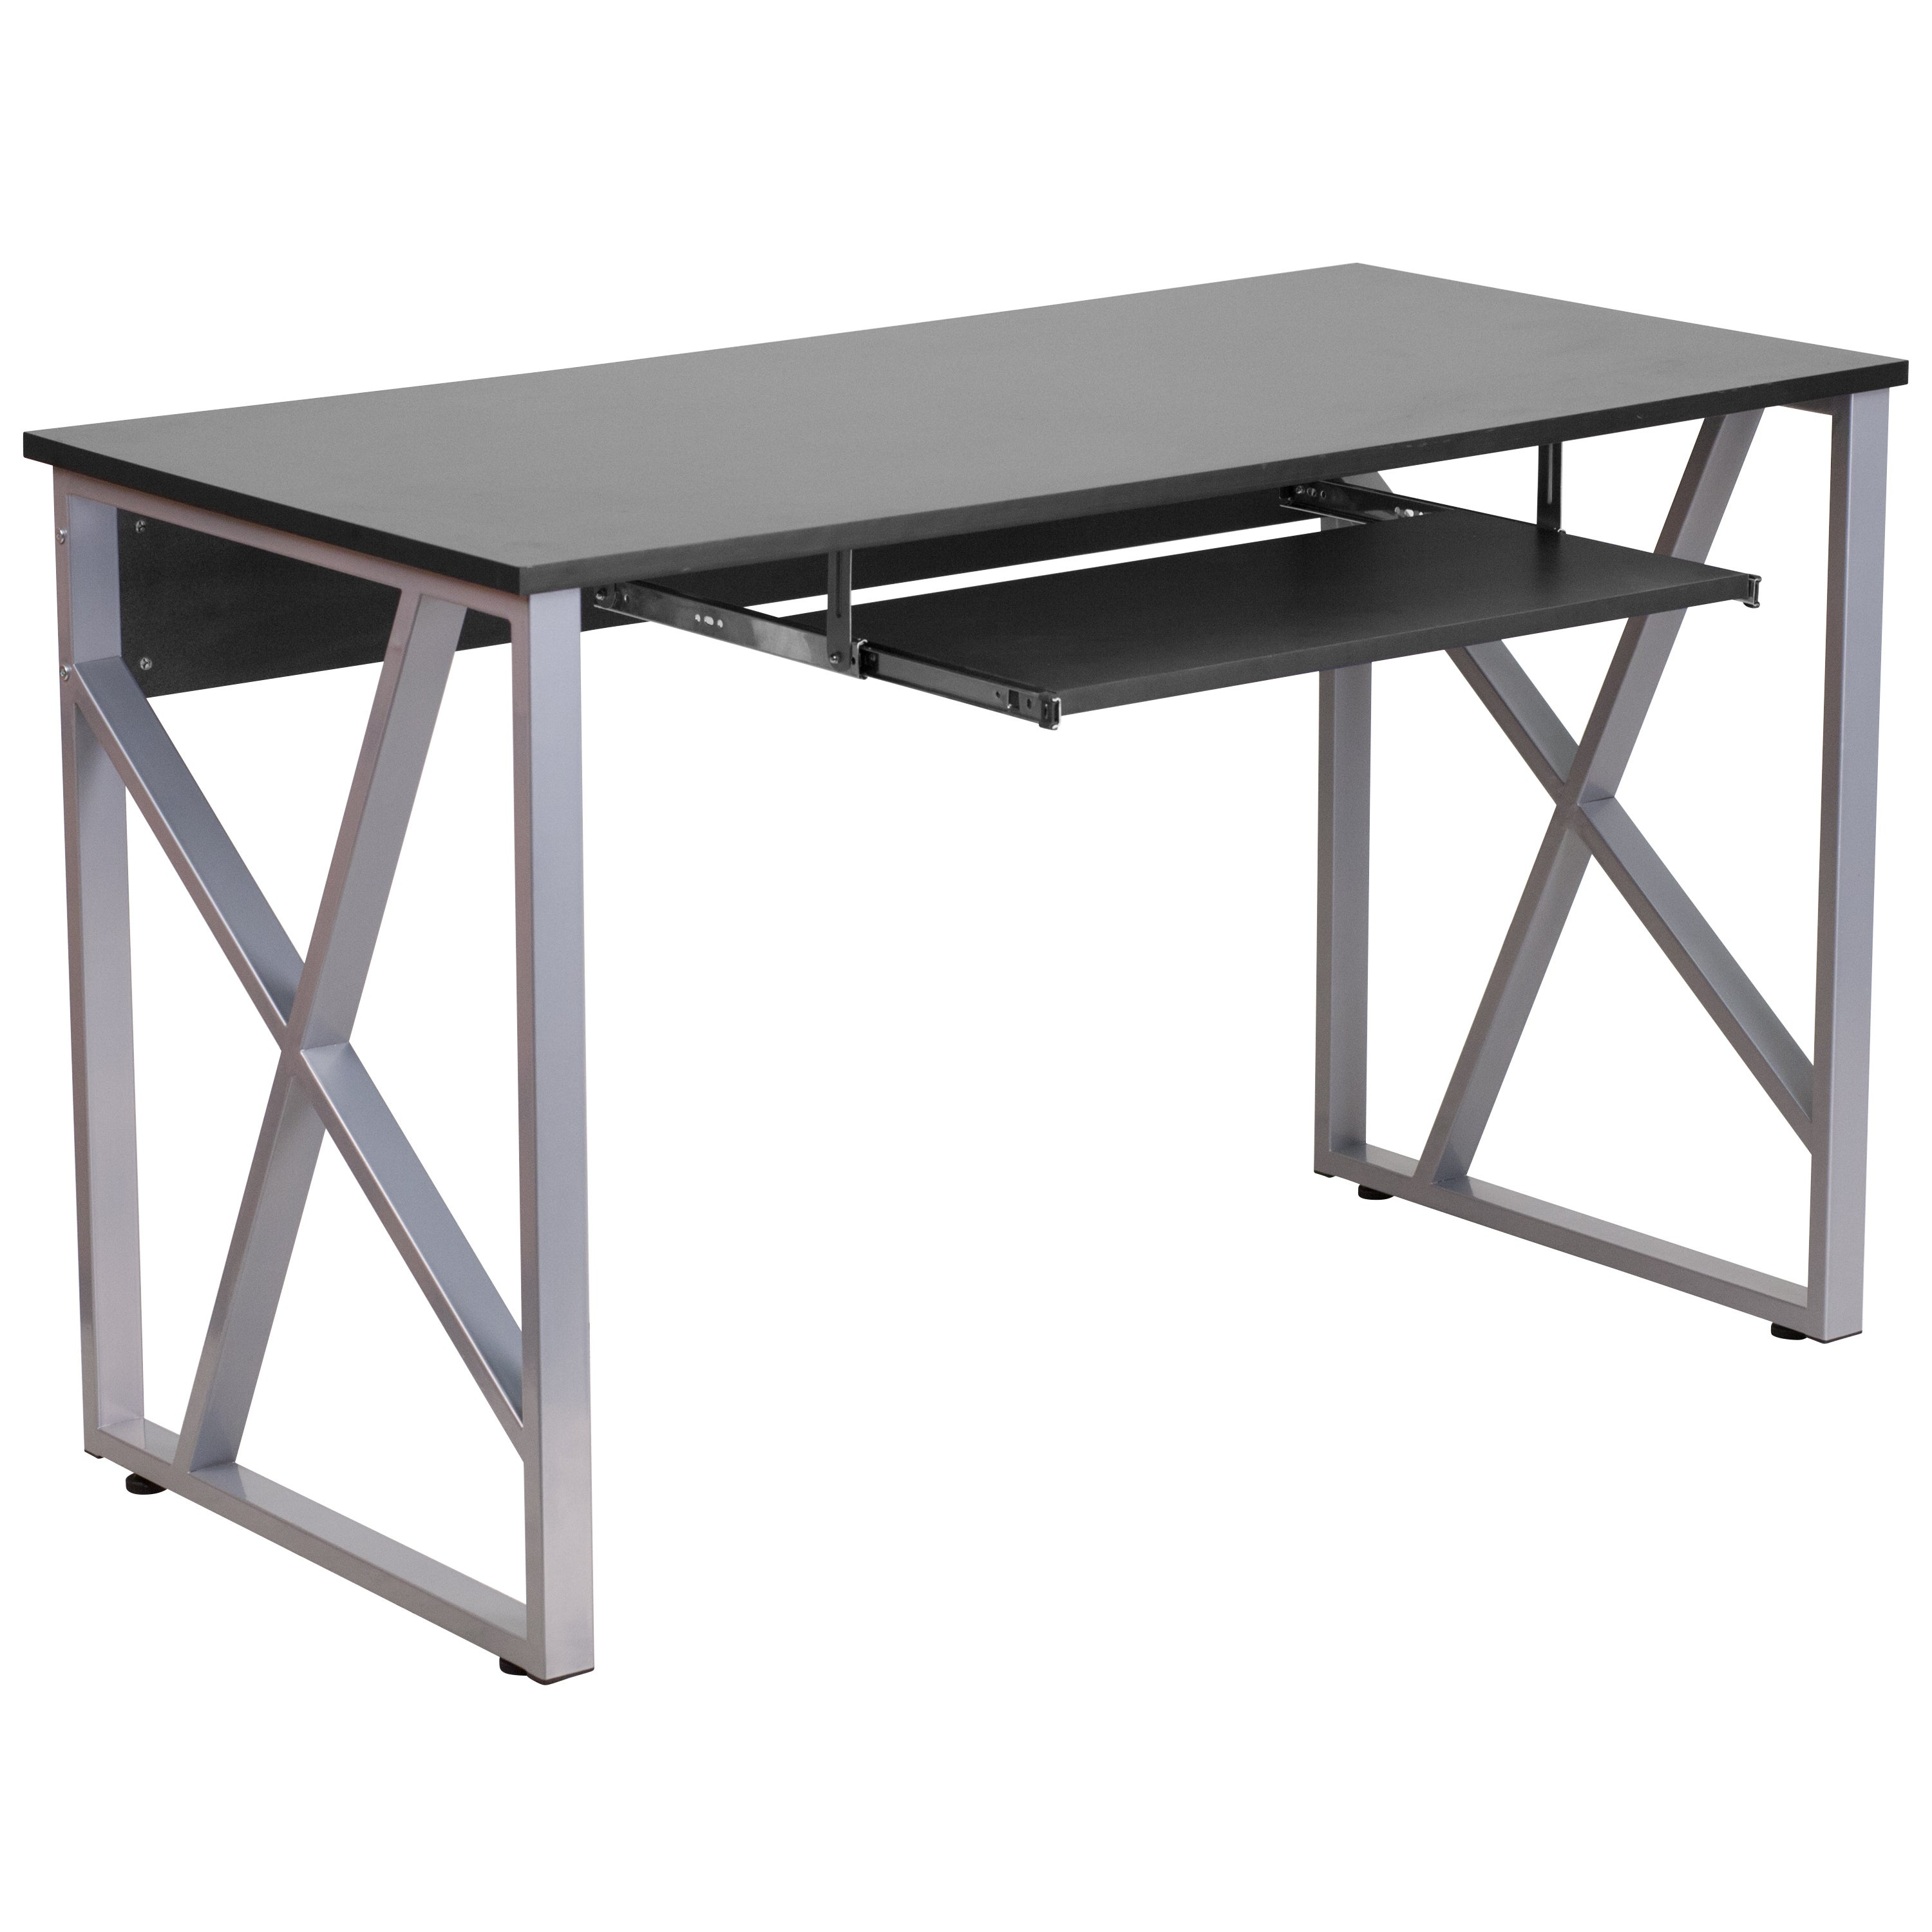 Ladigo Black Wood/Metal Computer Desk with Pull Out Keyboard Tray (1 Desk)